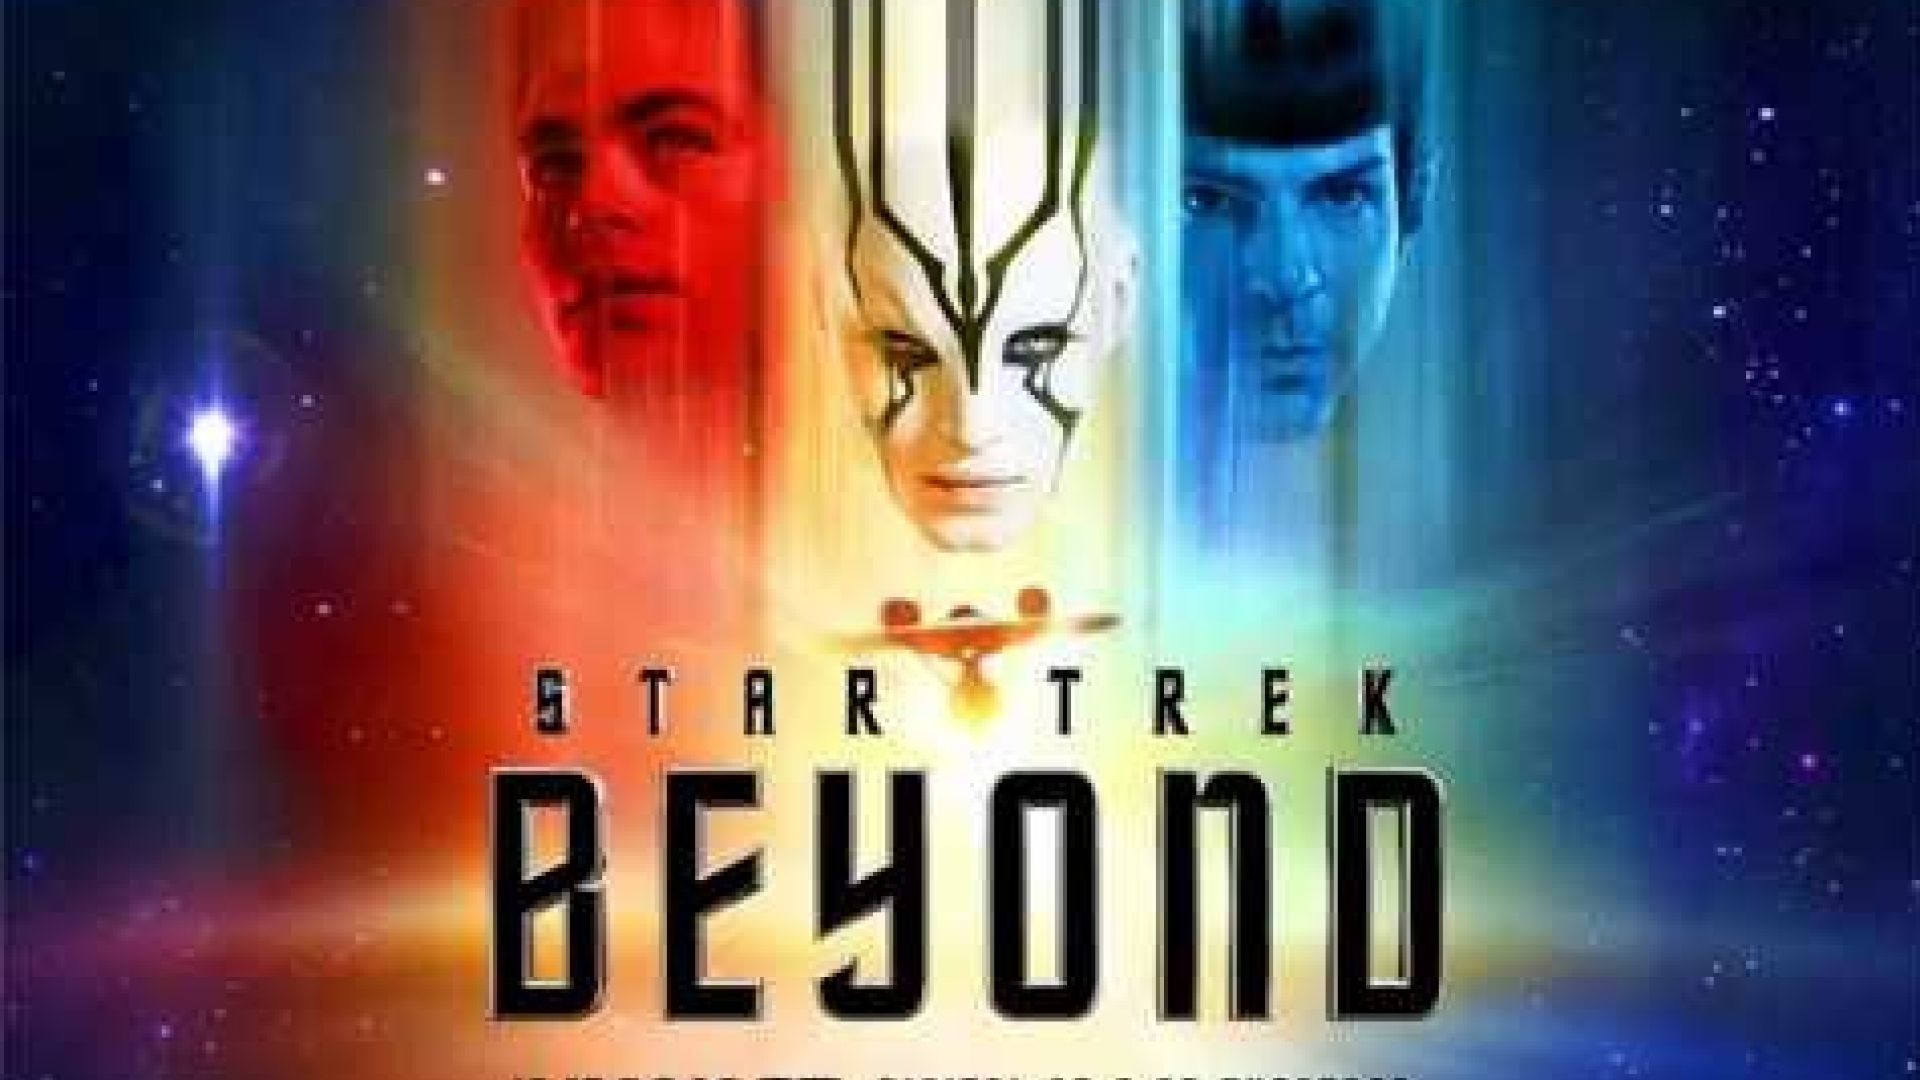 Paramount have released this mesmerizing Star Trek Beyond mo